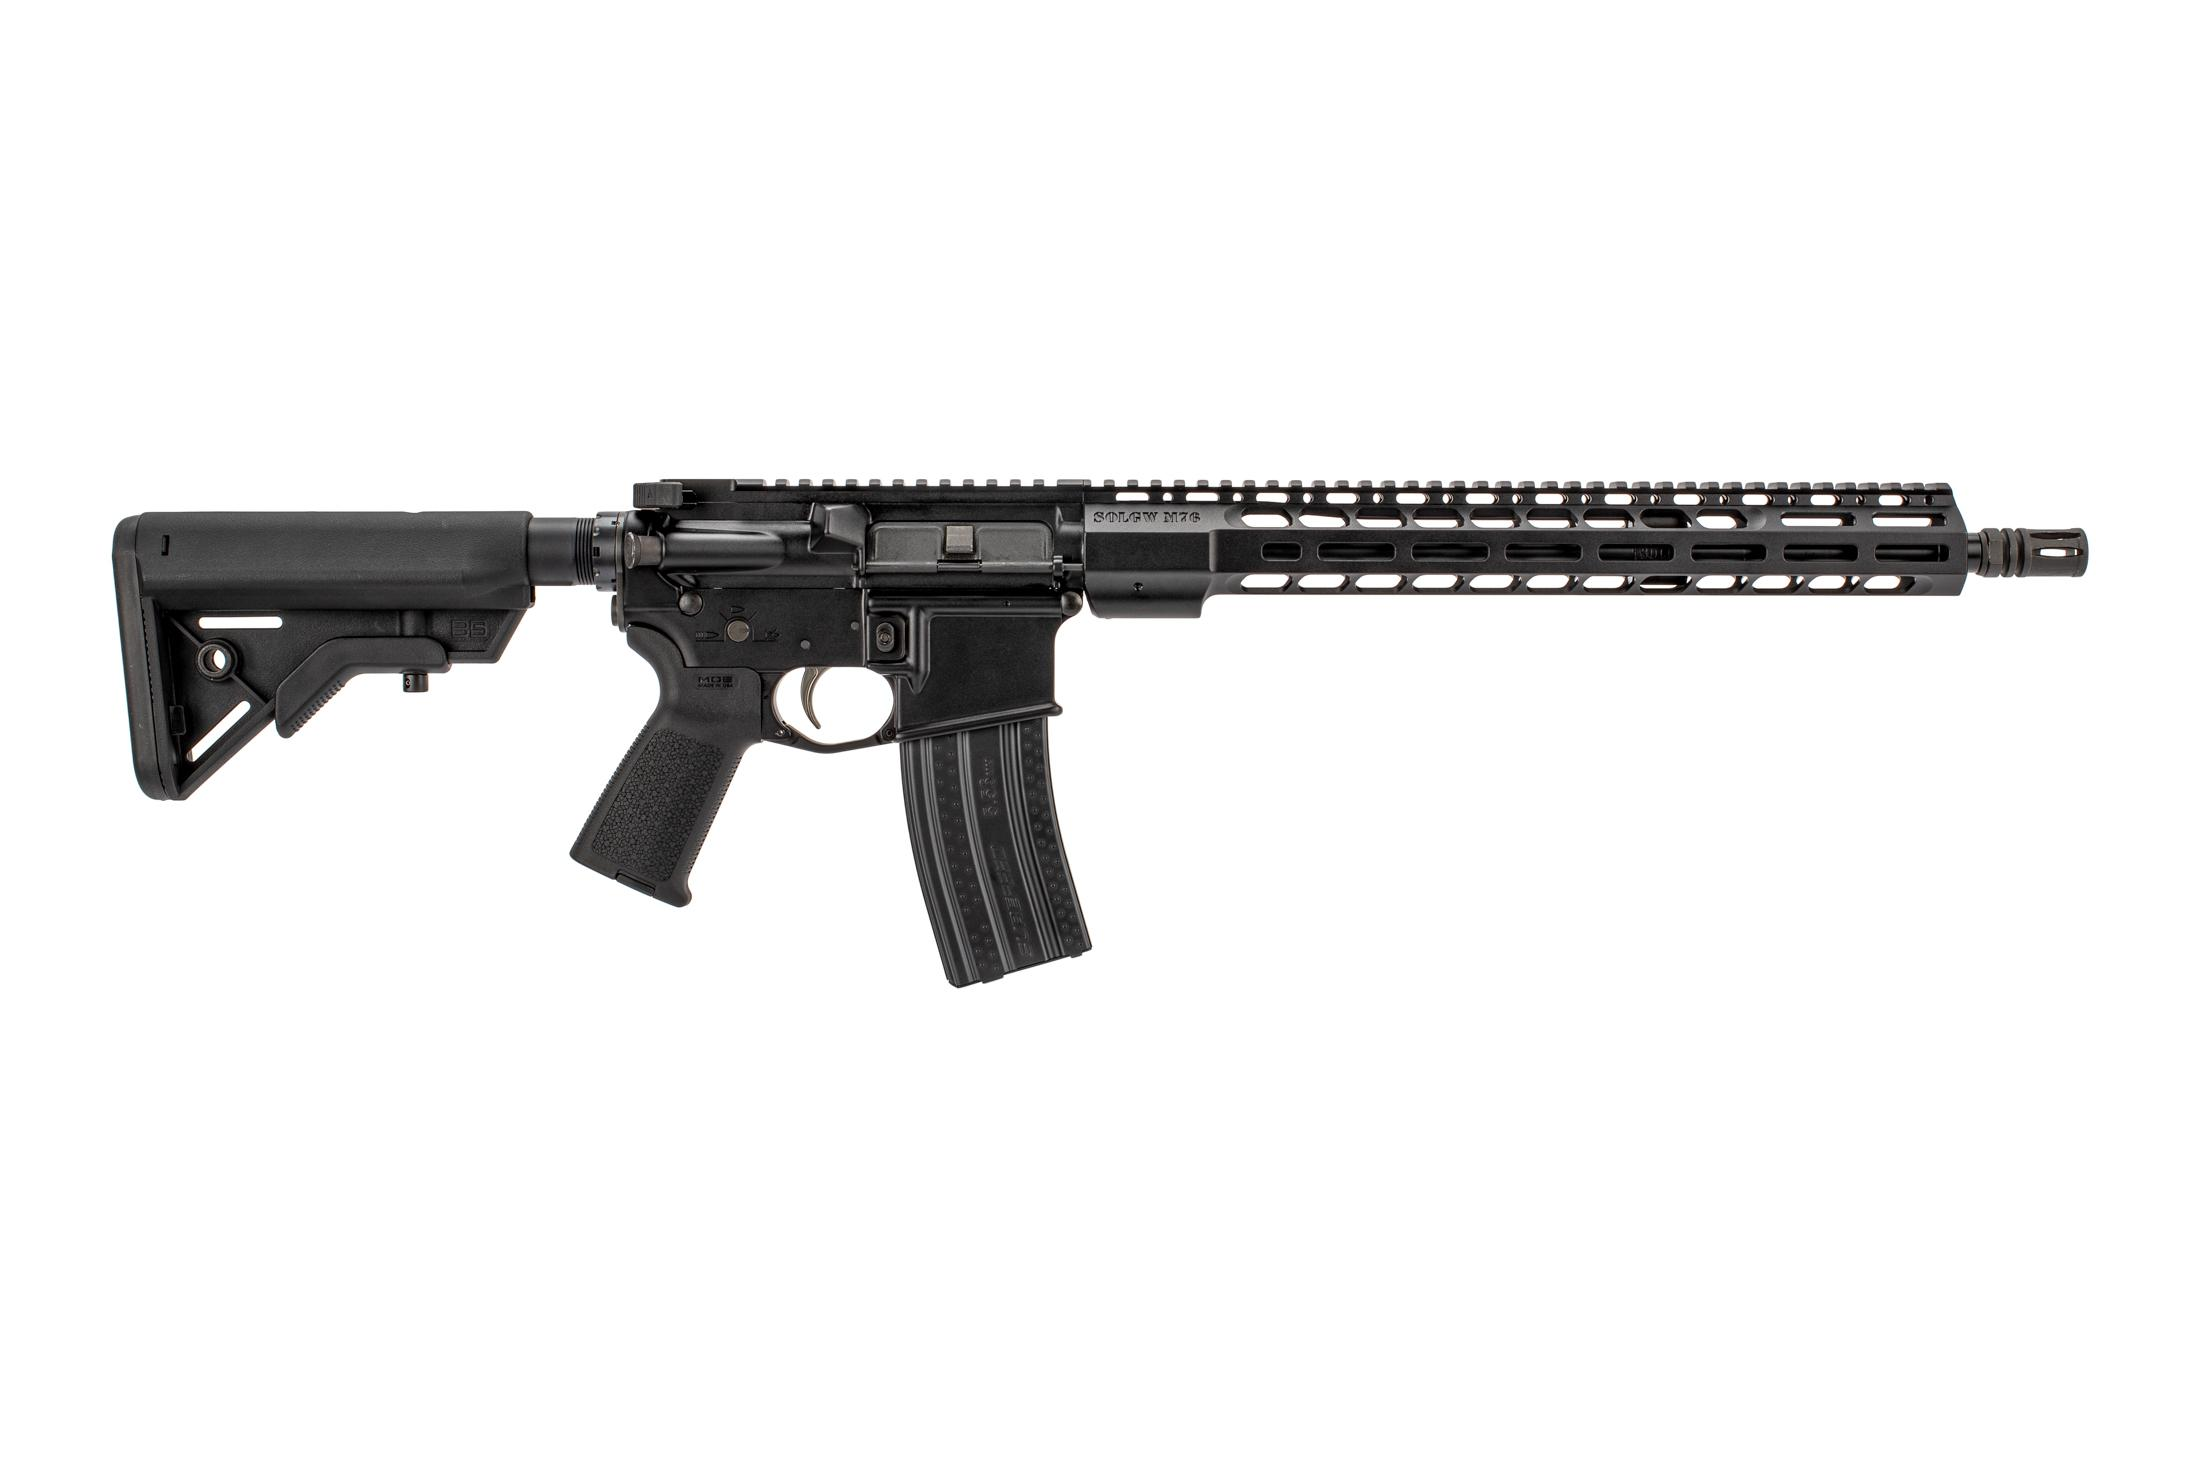 The Sons of Liberty Gun Works M4-76 complete AR15 rifle features a 16 inch barrel and M-LOK handguard